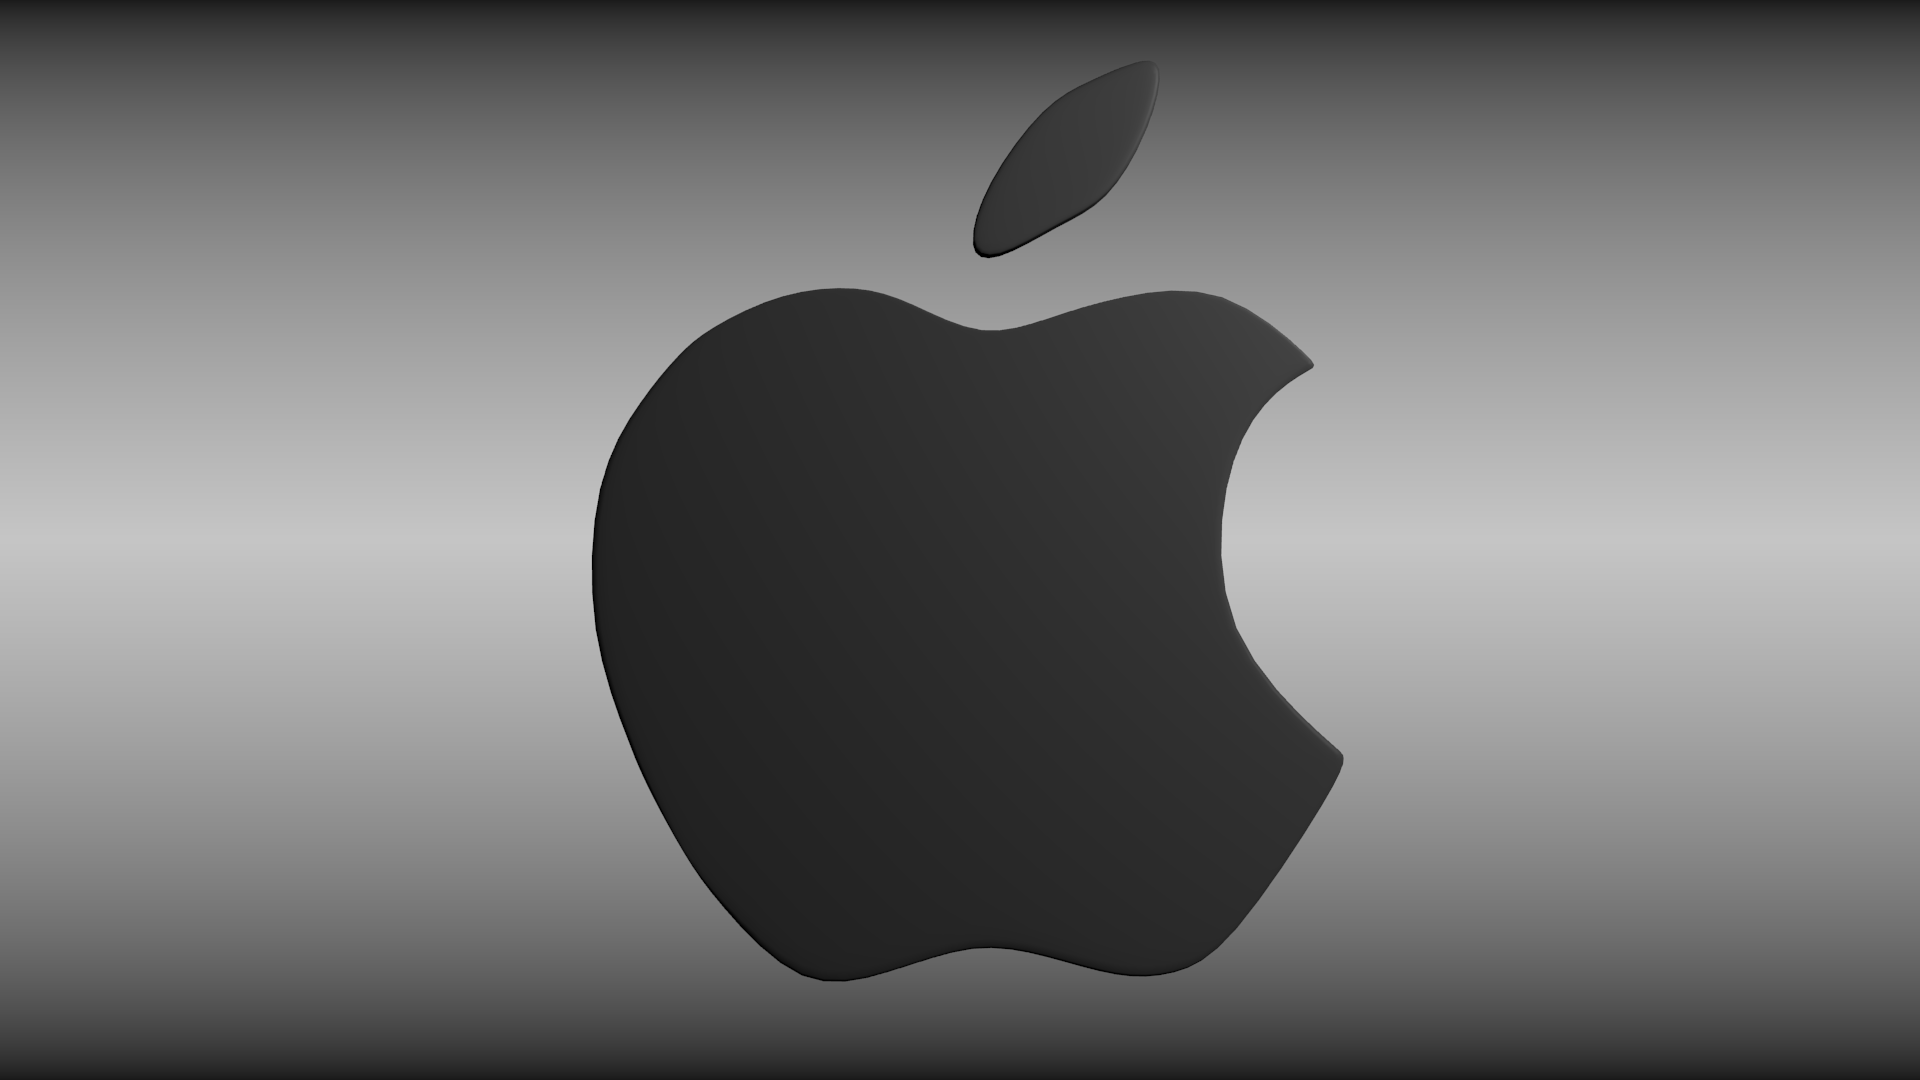 apple logo white on black. apple logo 3d model obj 3ds fbx blend dae mtl 4 white on black